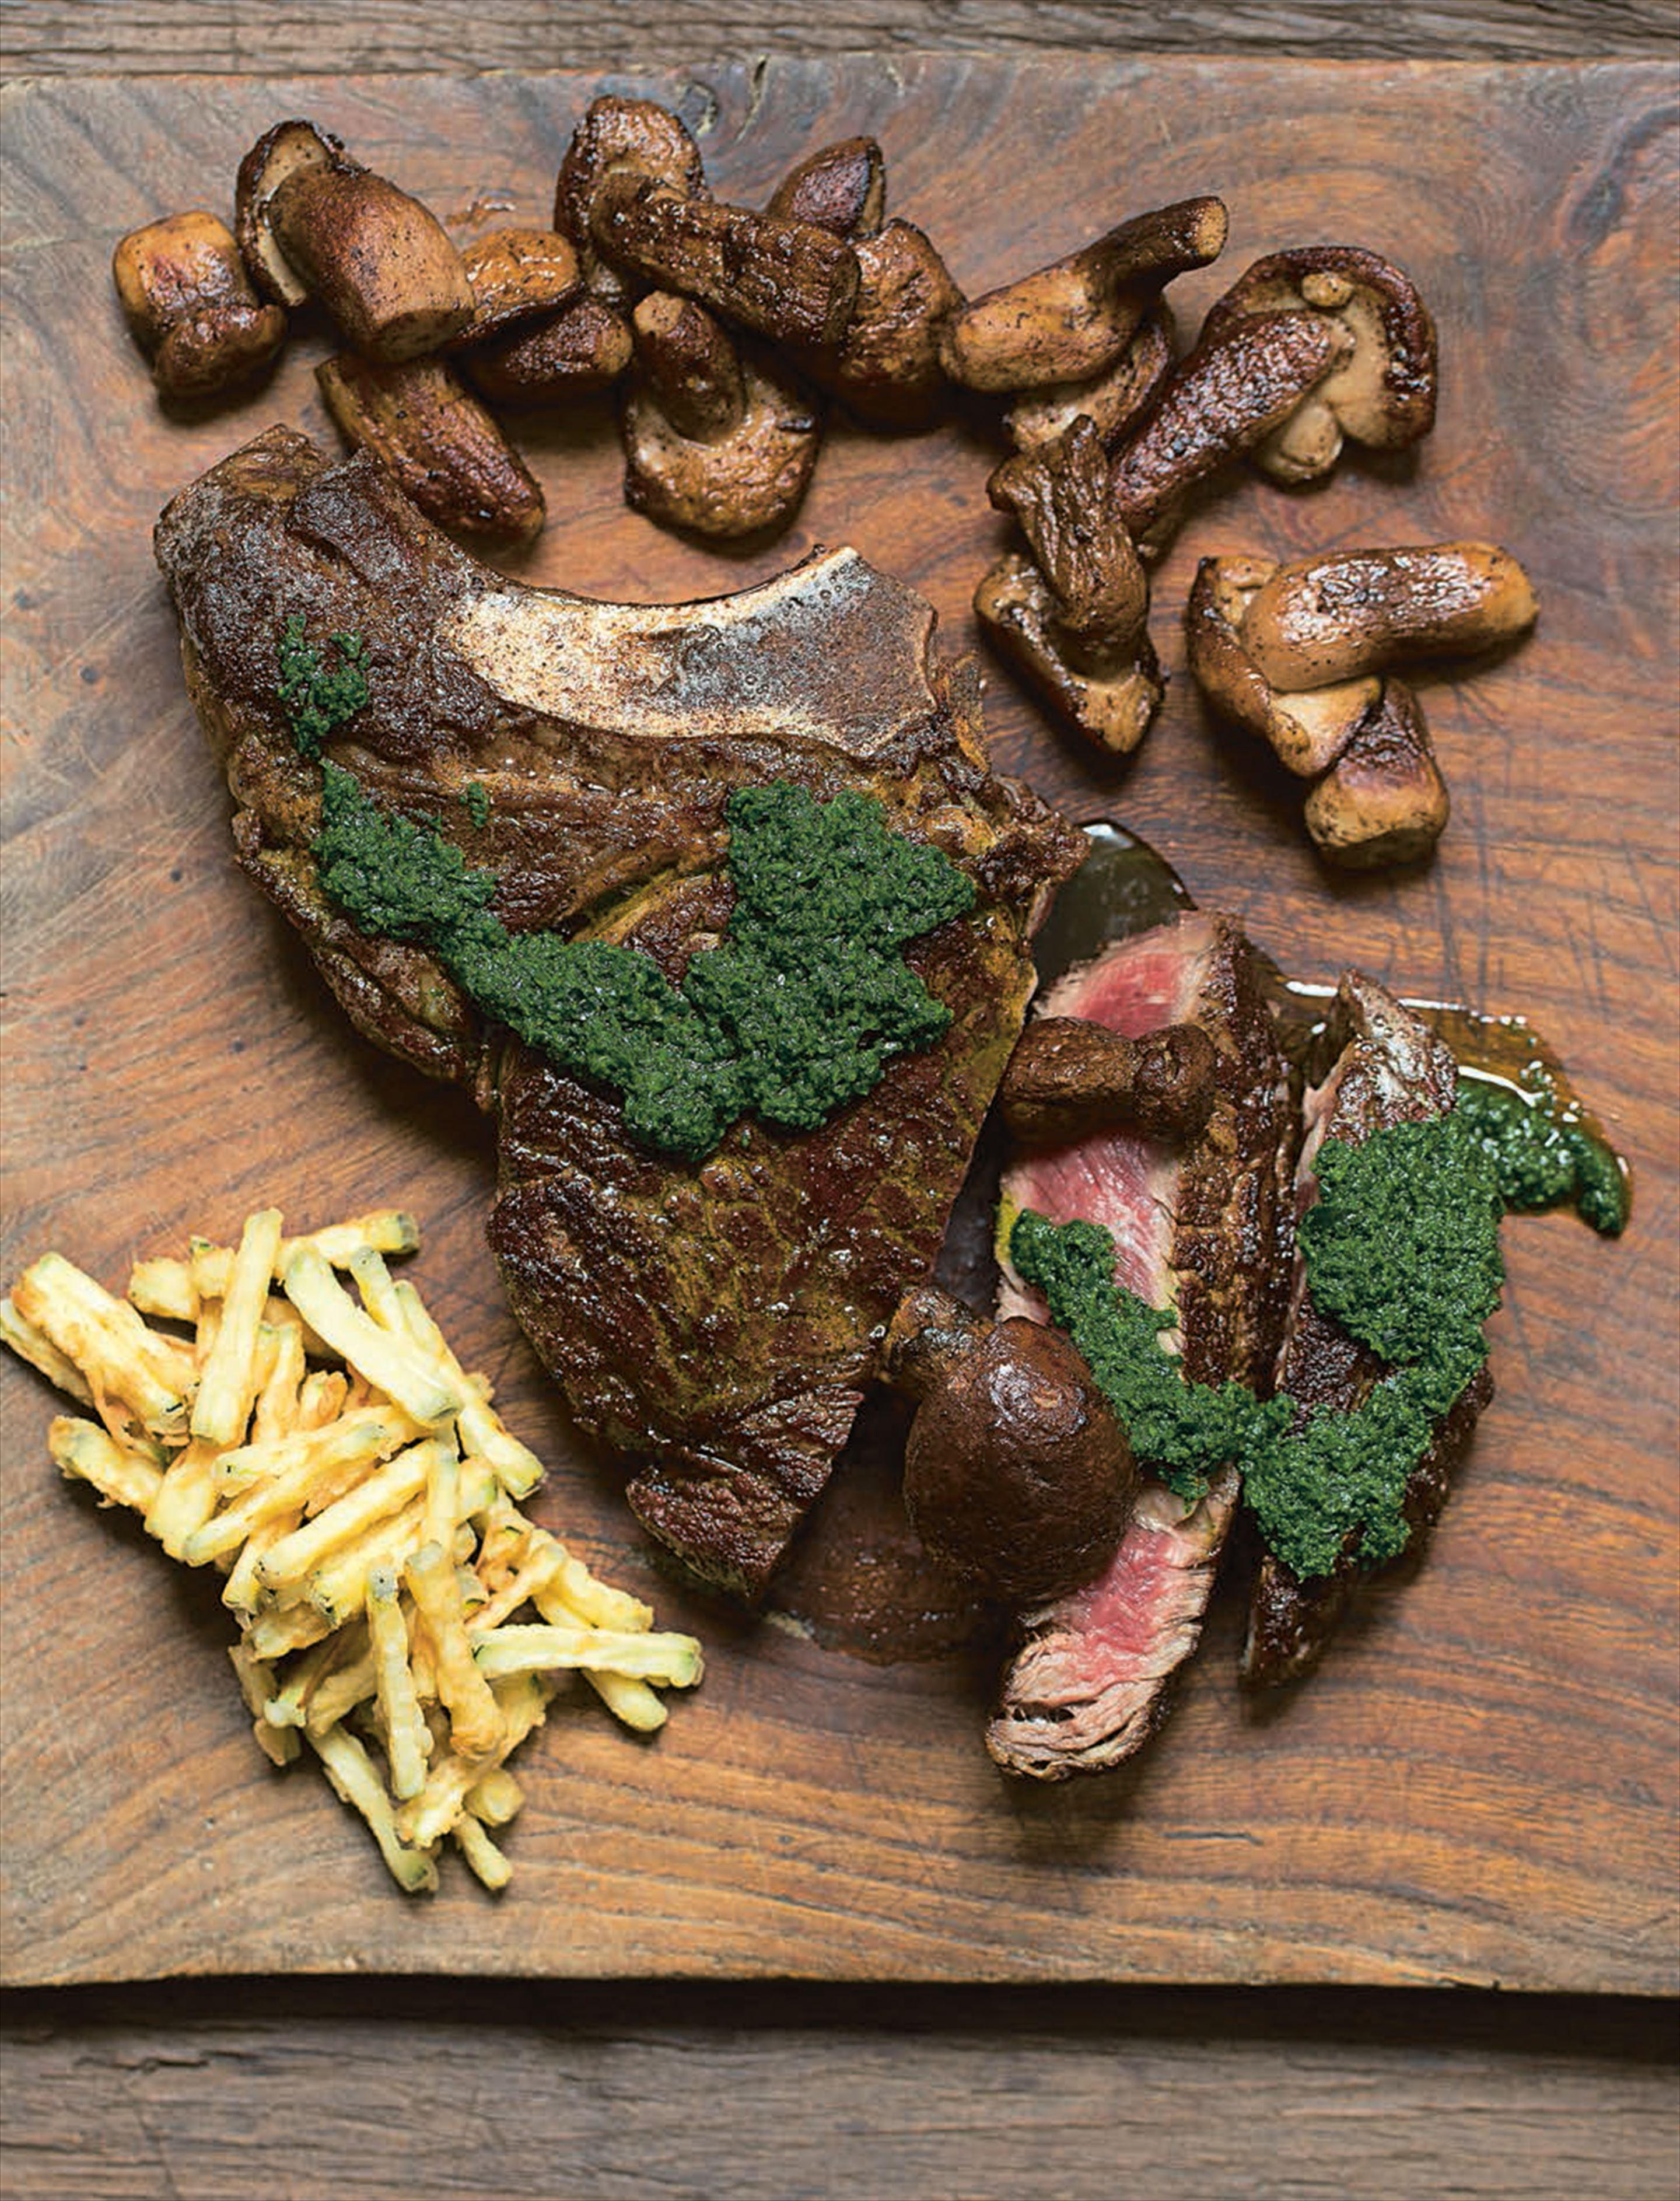 Côte de boeuf with herb salsa, courgette frites and ceps